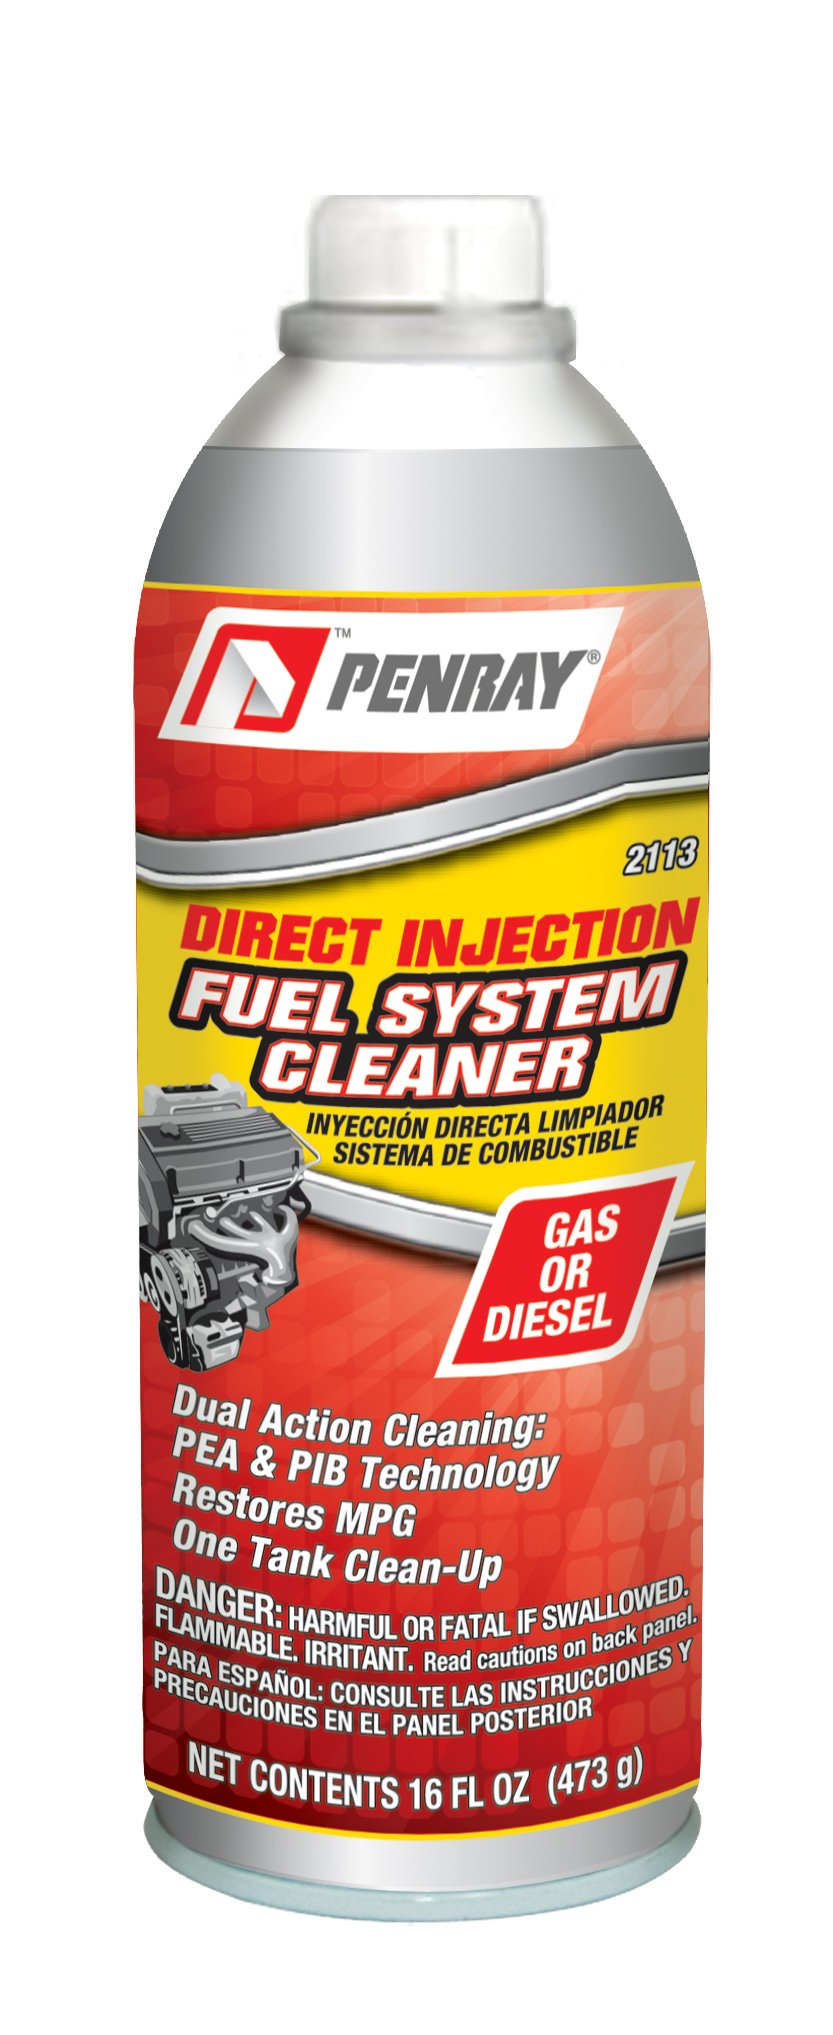 Penray 2113-12PK Direct Injection Fuel System Cleaner - 16-Ounce Aerosol Can, Case of 12 by Penray